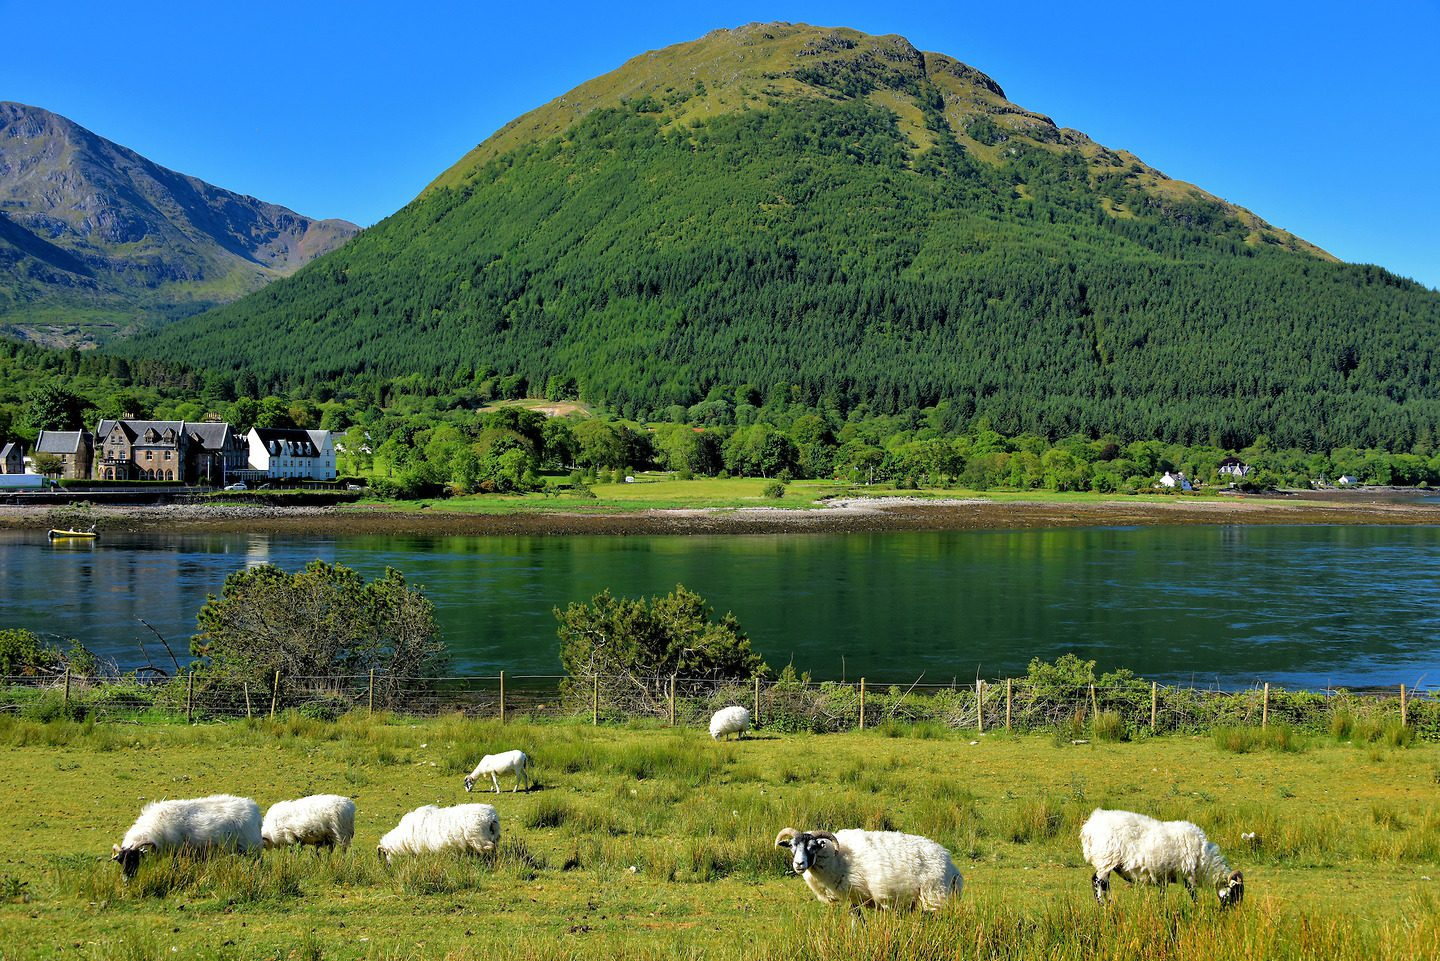 Scotland Highlands Ballachulish Sheep Loch 1440x961